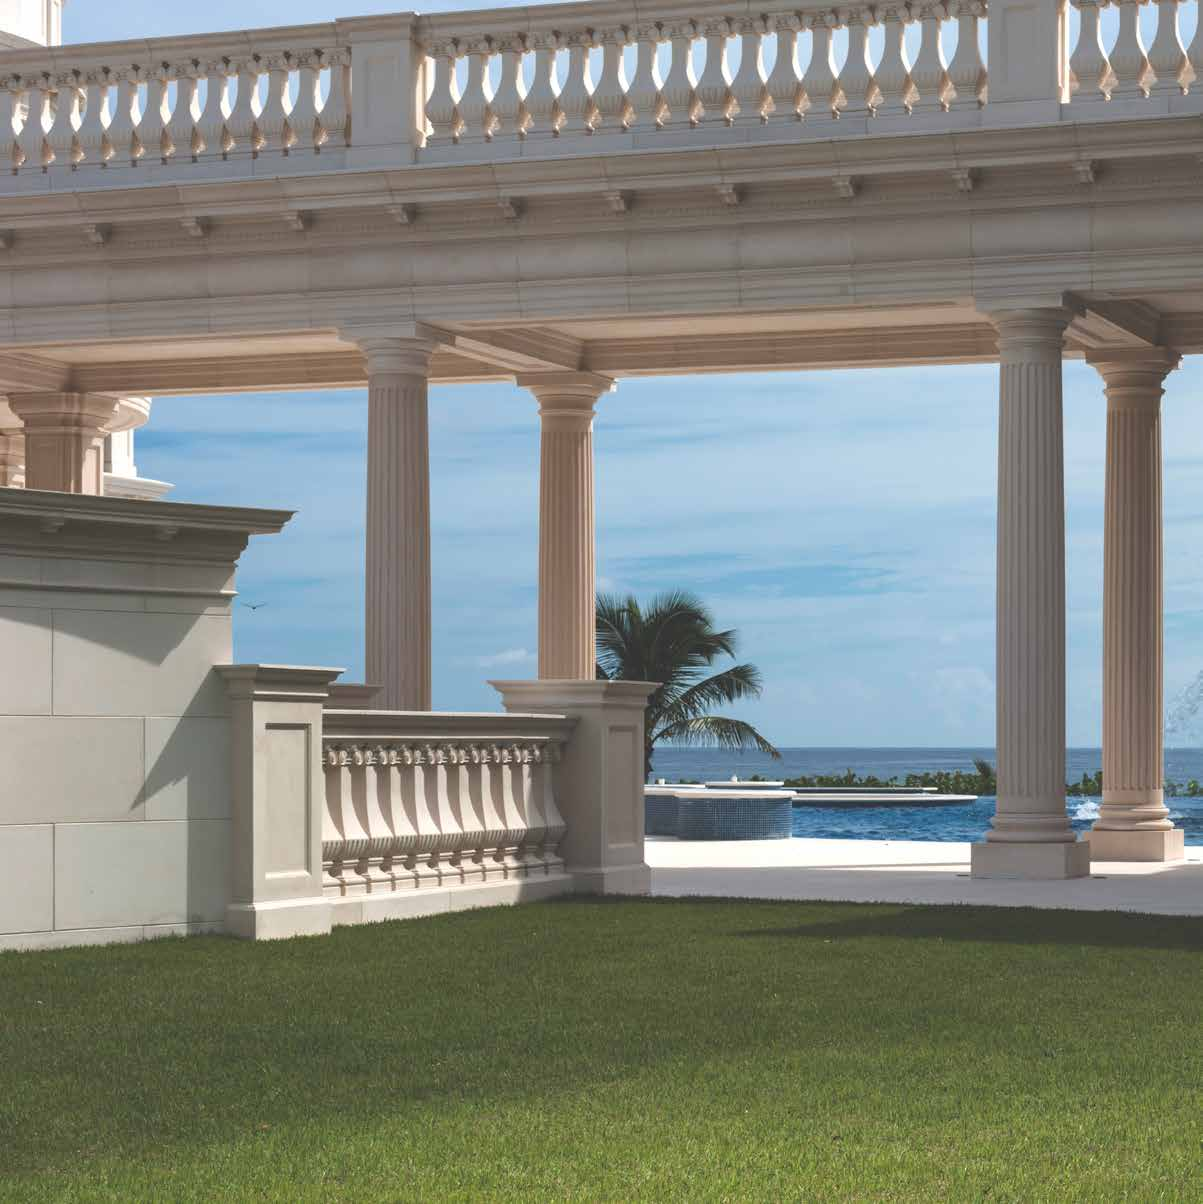 Le palais royal miami luxury real estate for Biggest house in miami